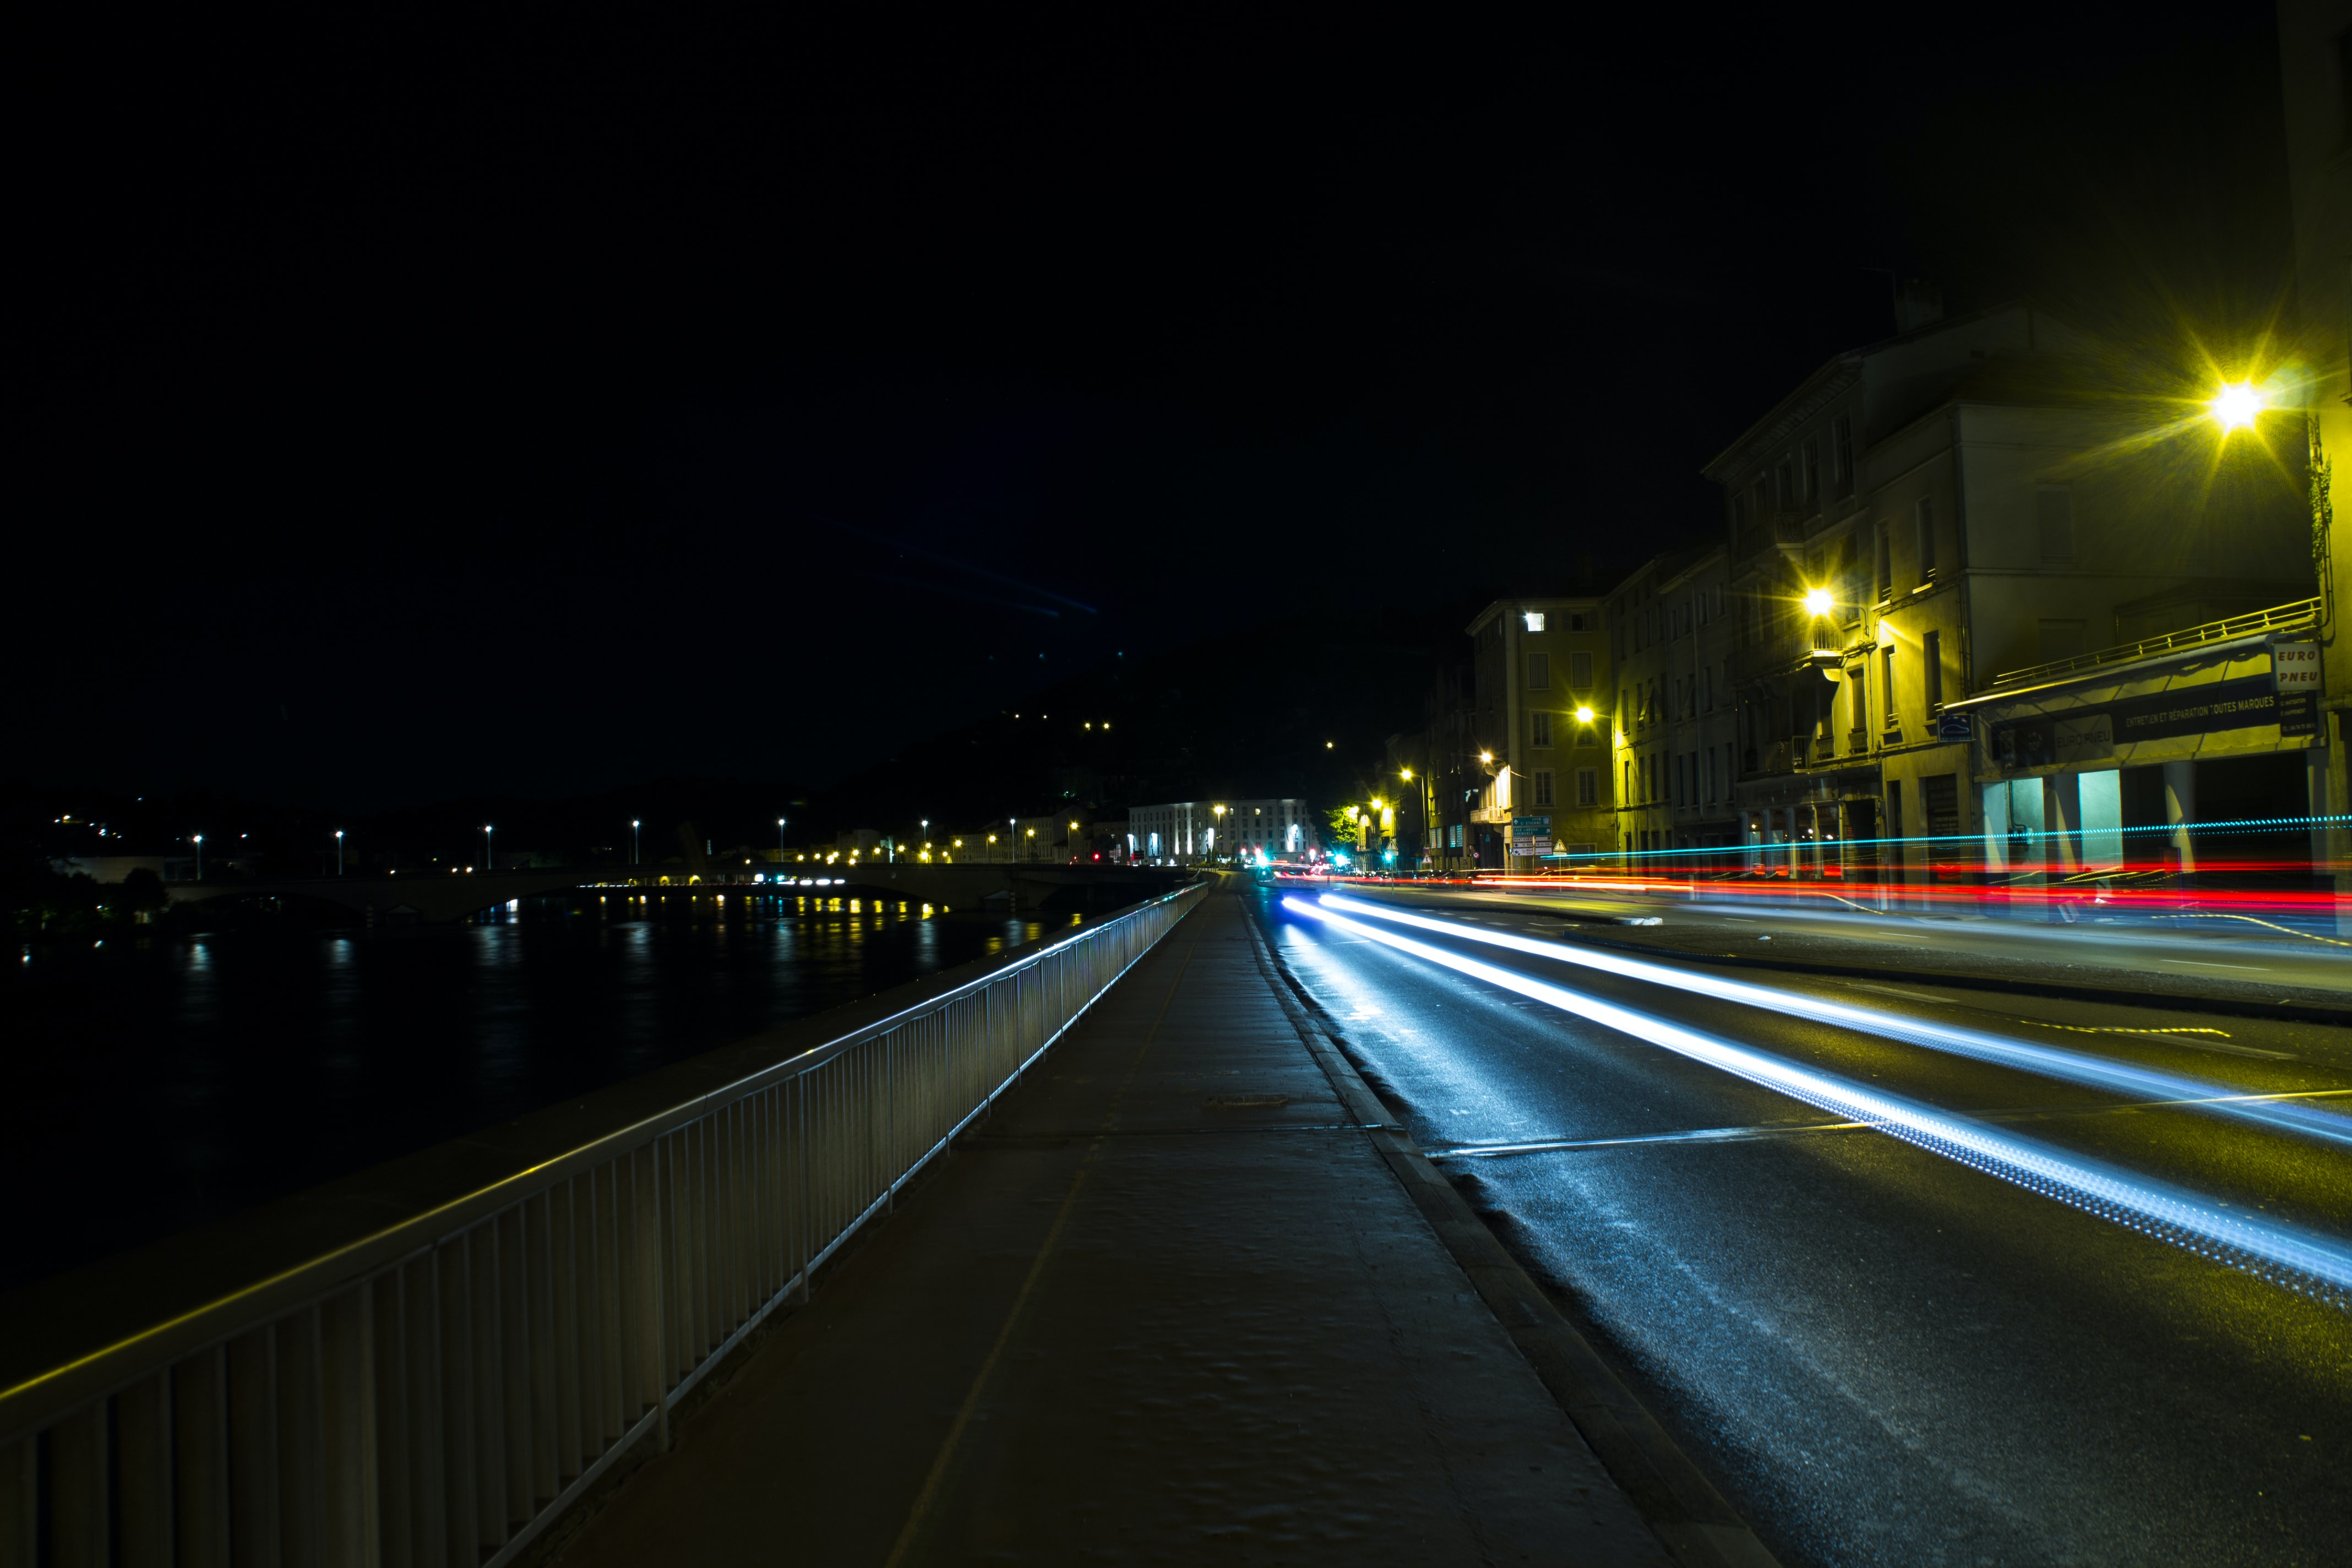 Light from car speeds past on a city road near the water at night